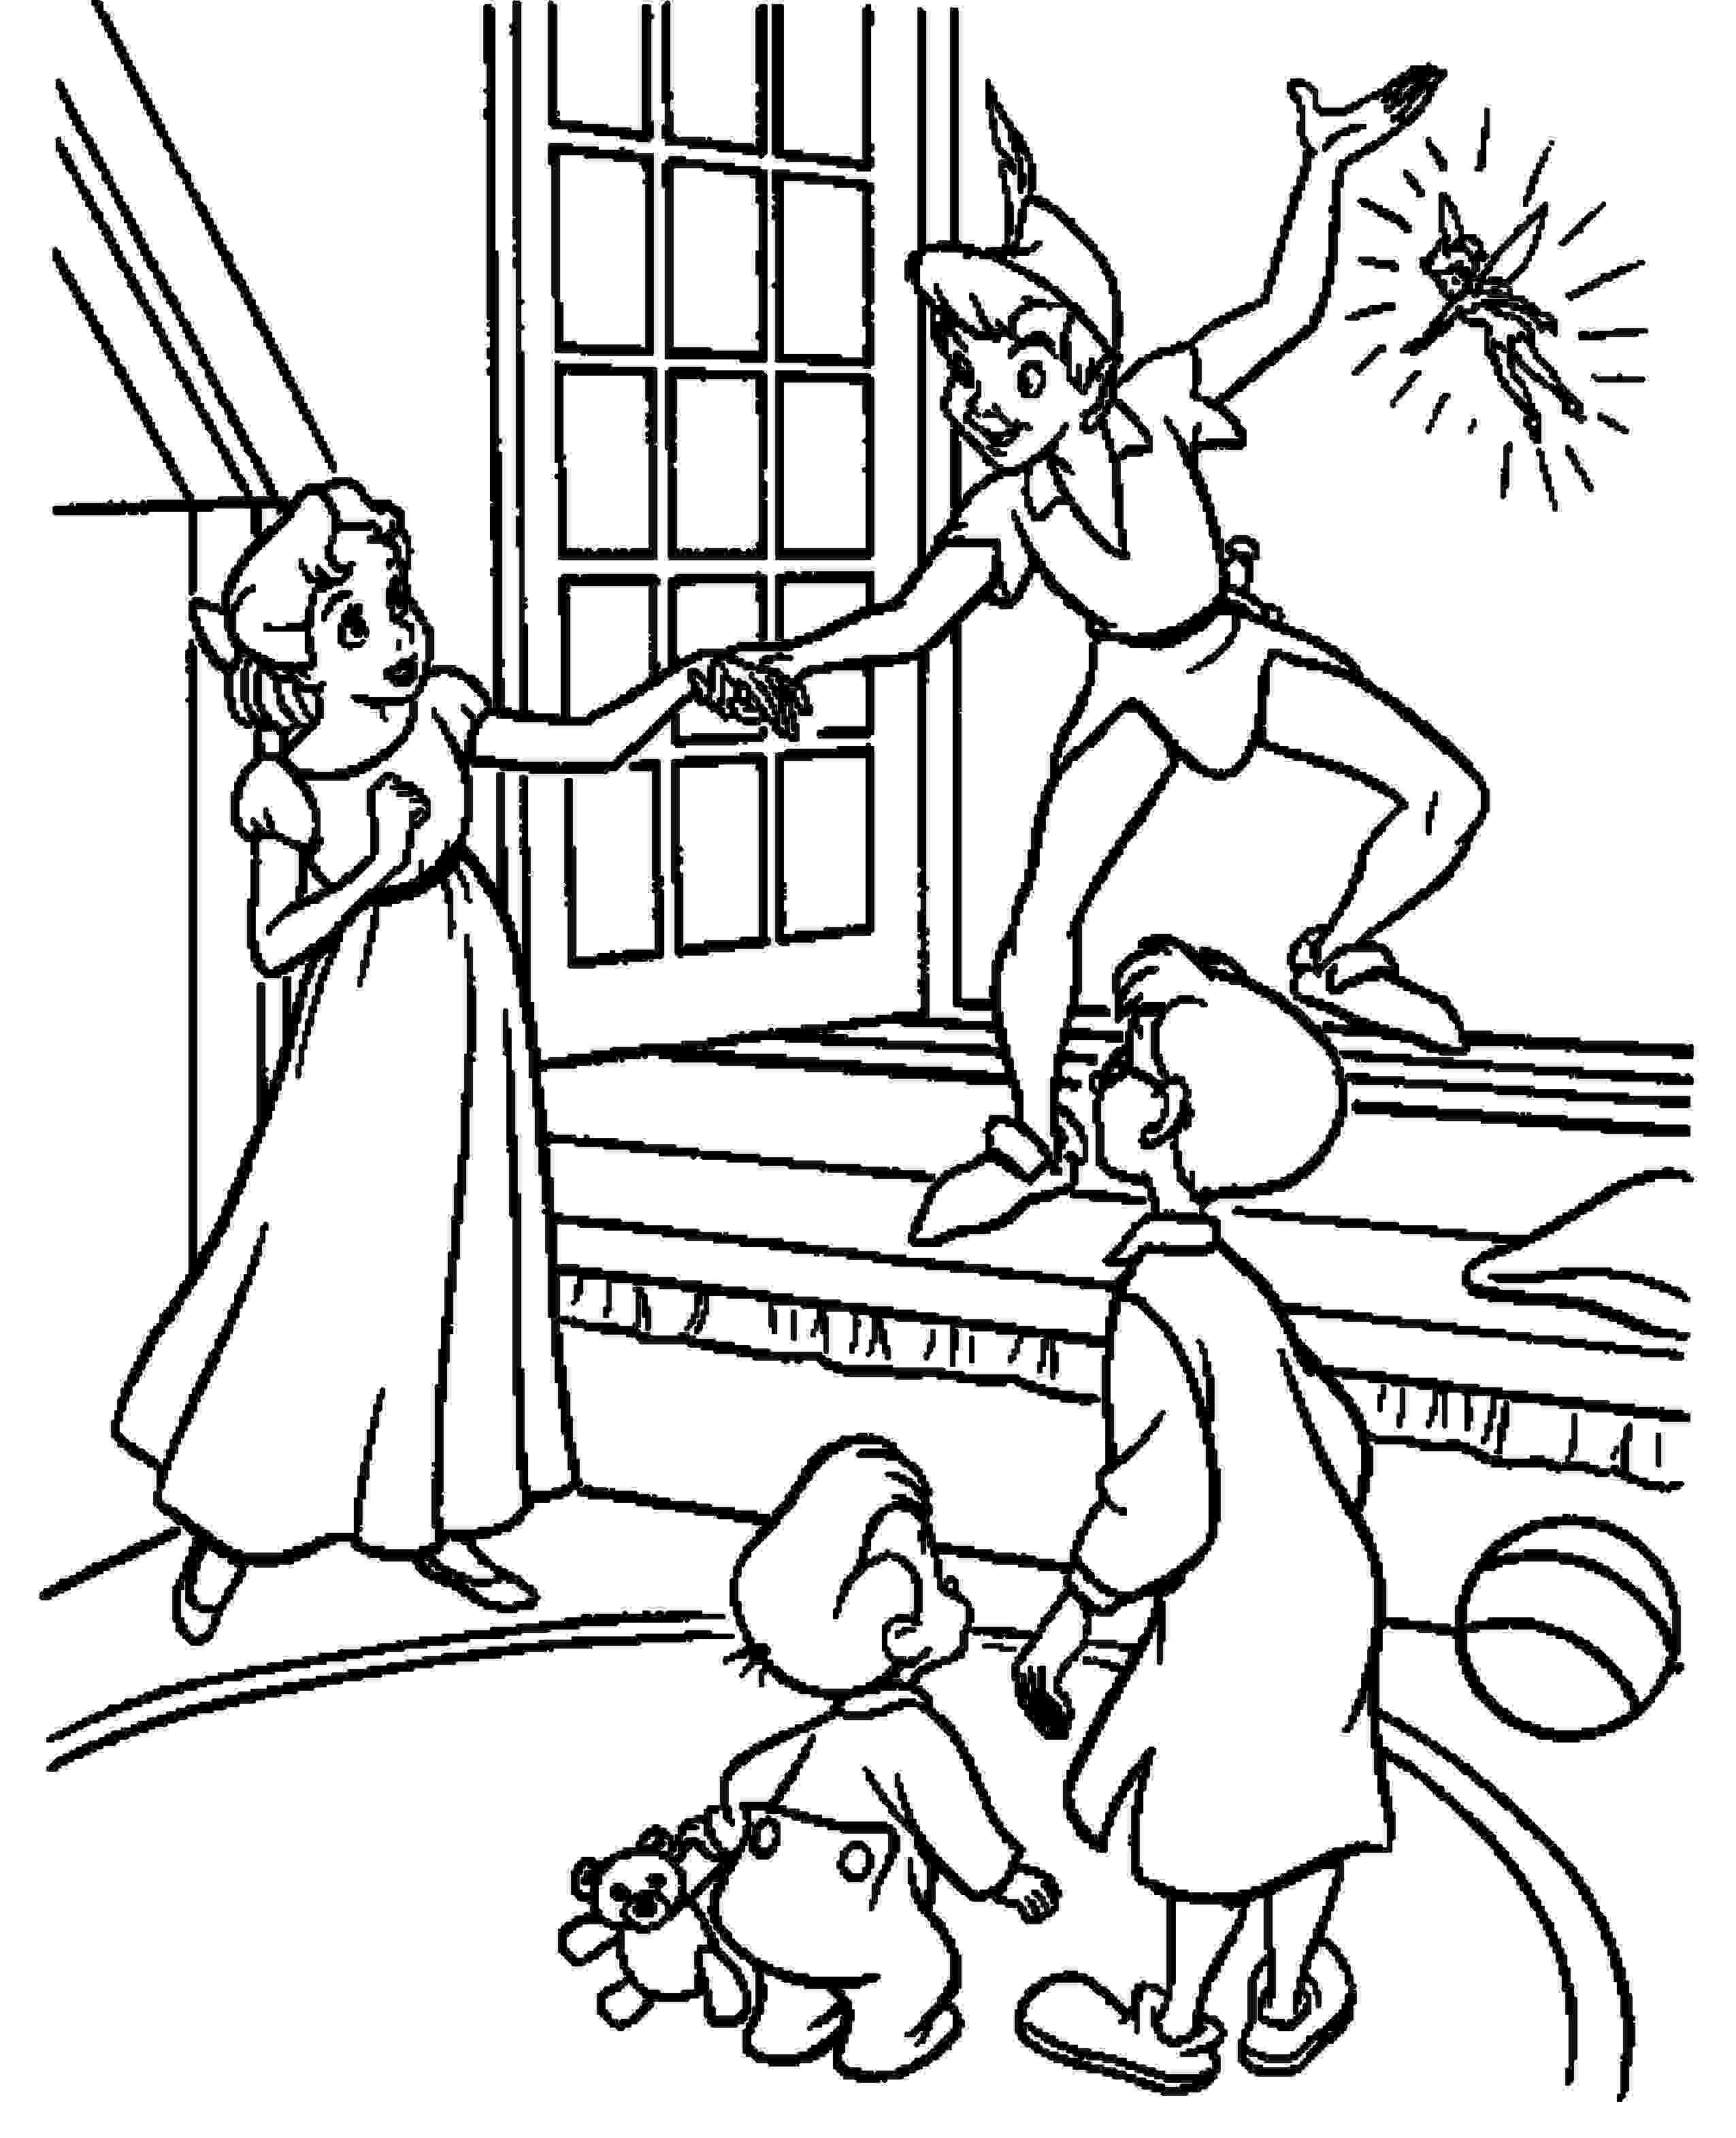 peter pan coloring pages free printable peter pan coloring pages for kids peter coloring pages pan